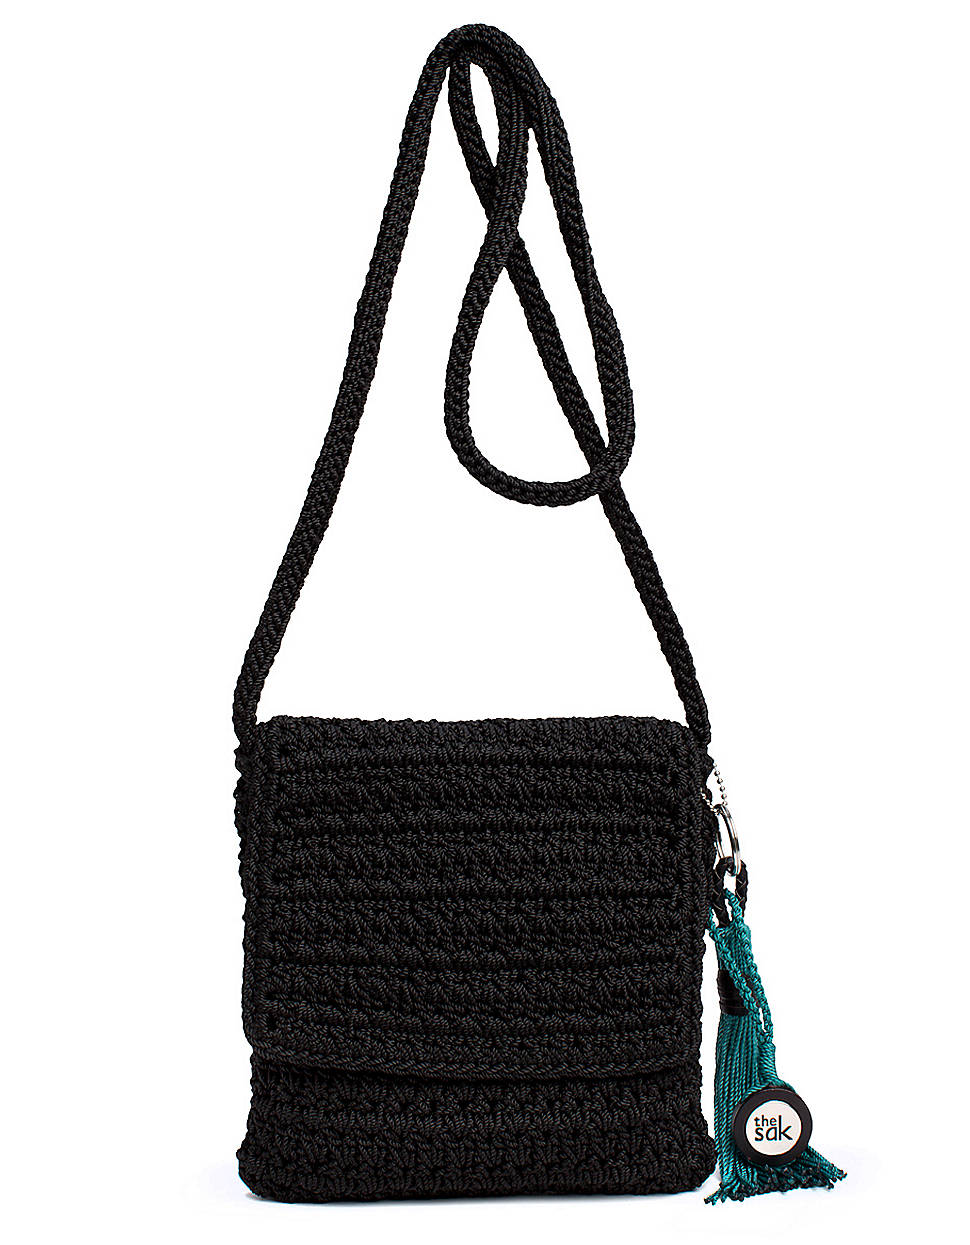 Sak Crochet Bag : The Sak Casual Classics Crochet Flap Shoulder Bag in Black Lyst